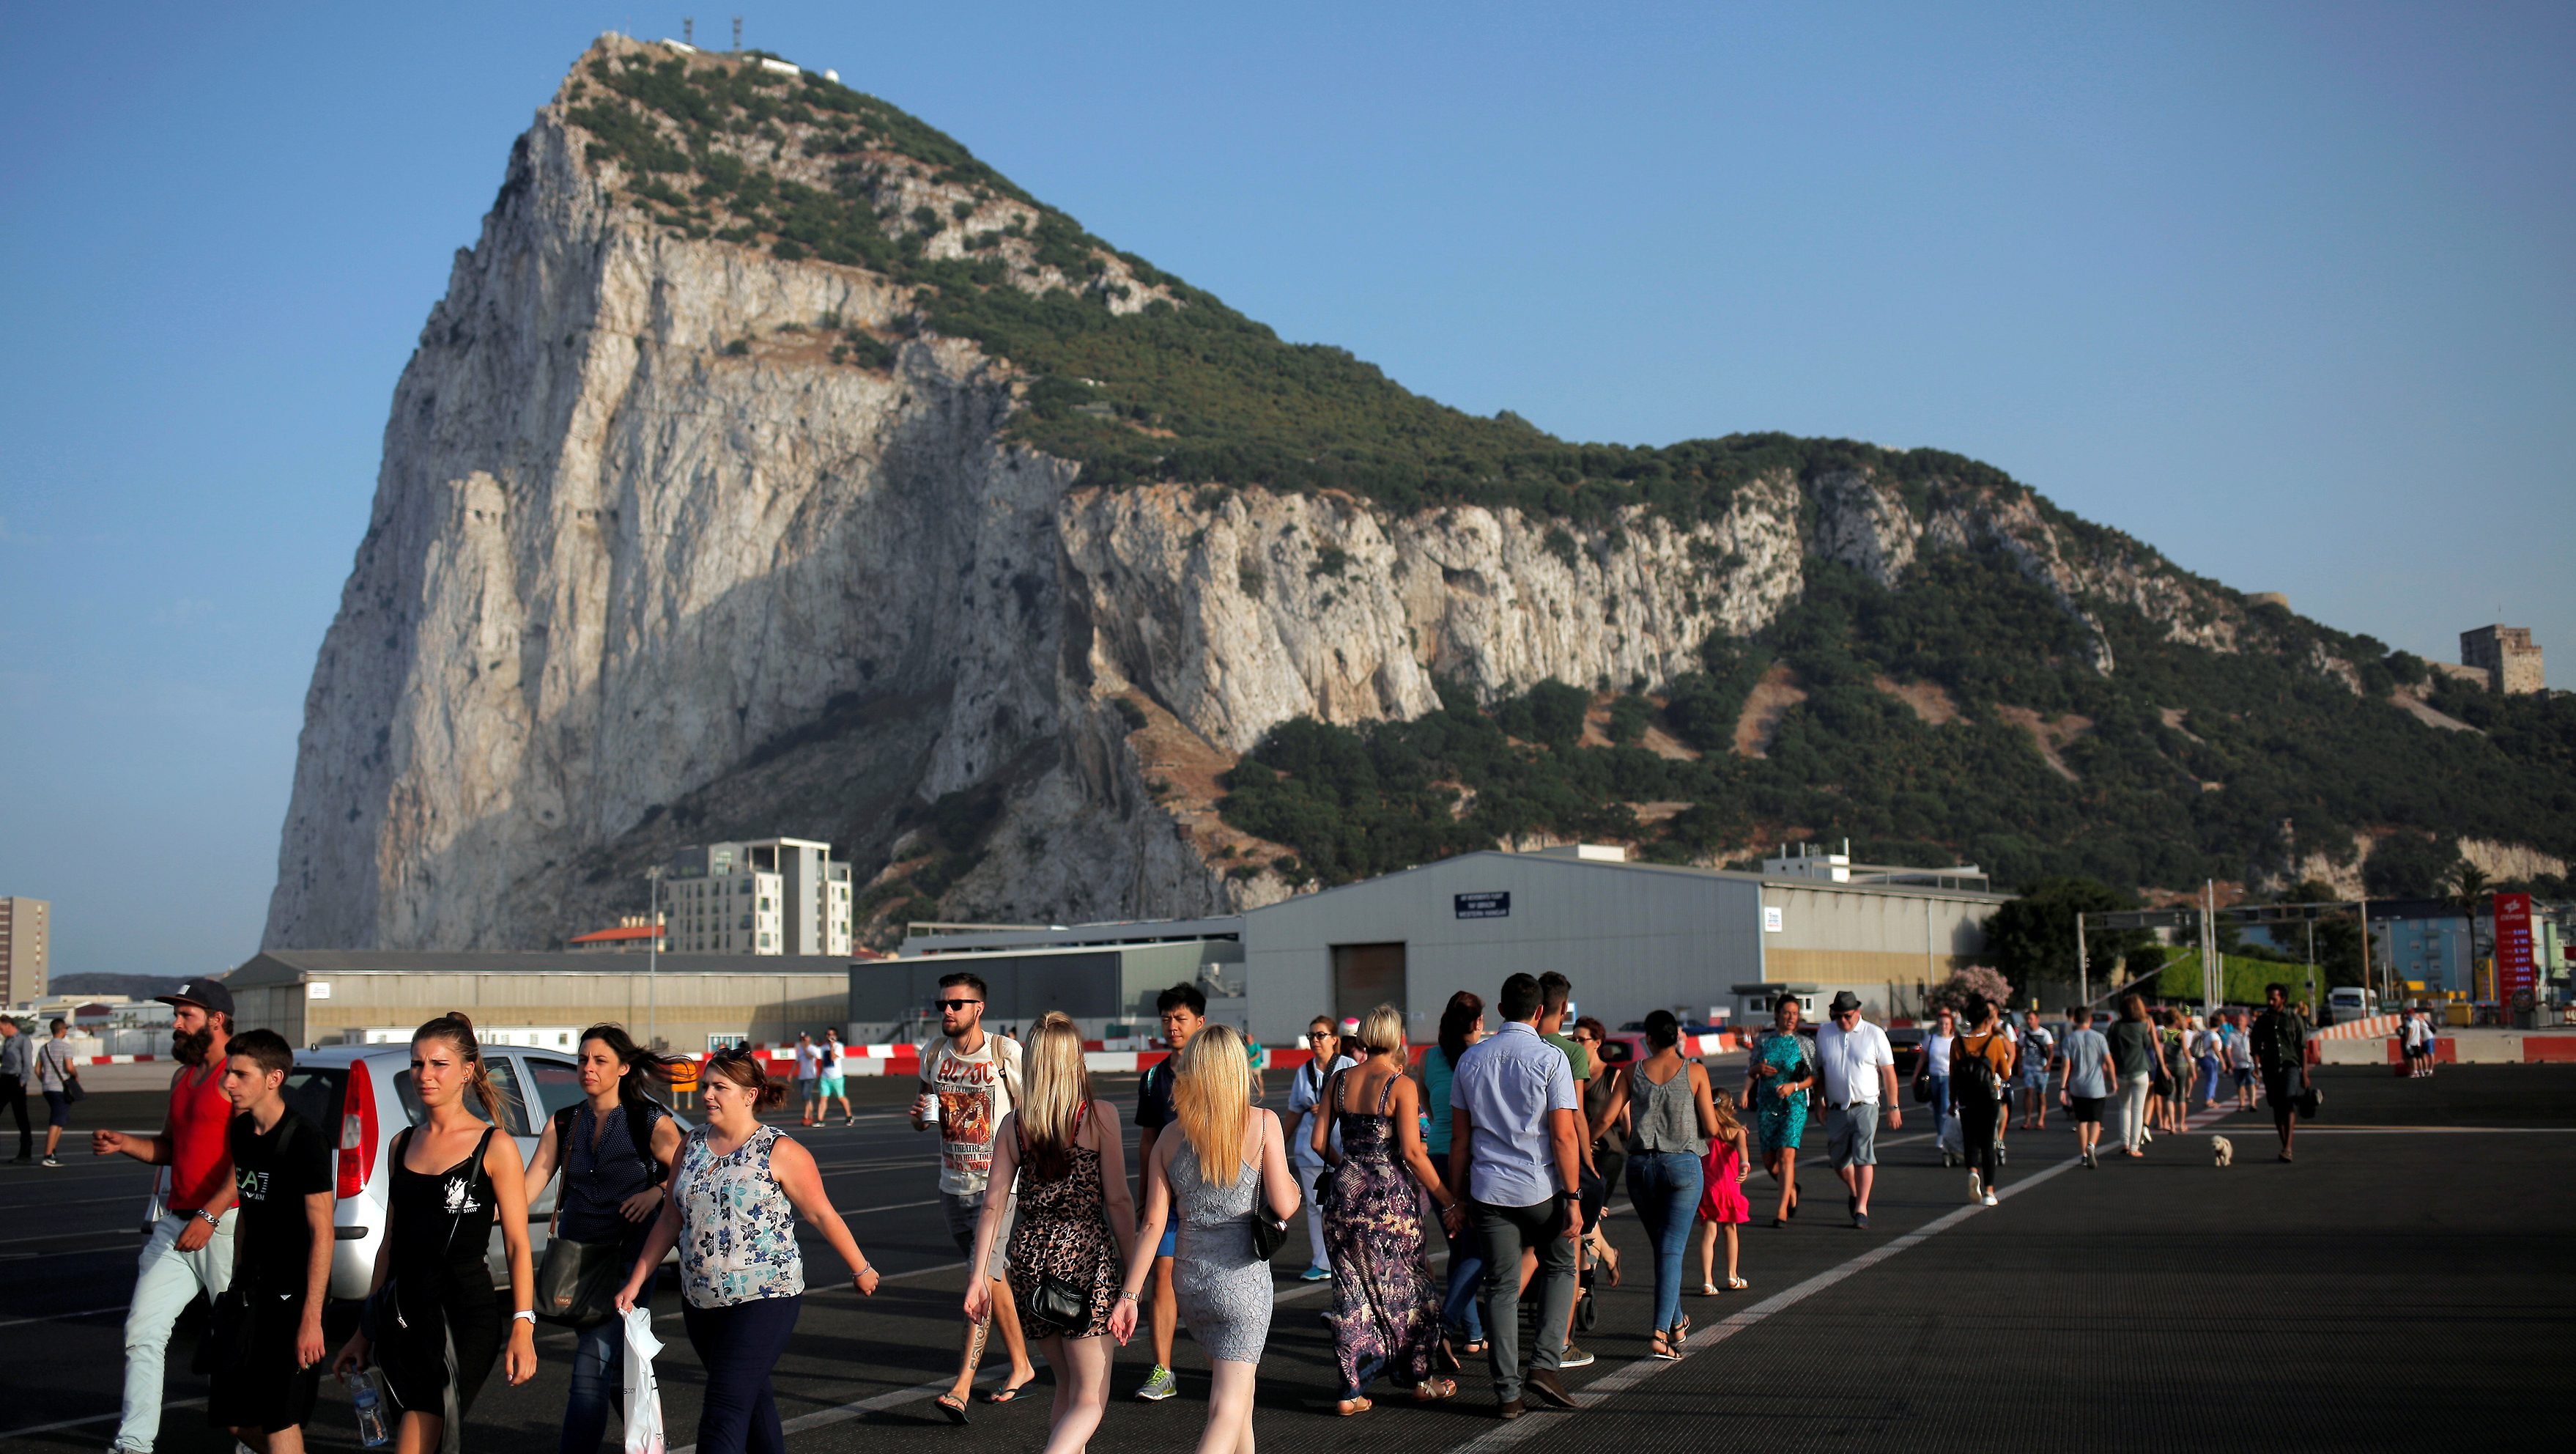 Pedestrians cross the tarmac at Gibraltar International Airport in front of the Rock near the border with Spain in the British overseas territory of Gibraltar, historically claimed by Spain, June 24, 2016, after Britain voted to leave the European Union in the EU BREXIT referendum. REUTERS/Jon Nazca - RTX2I2LA